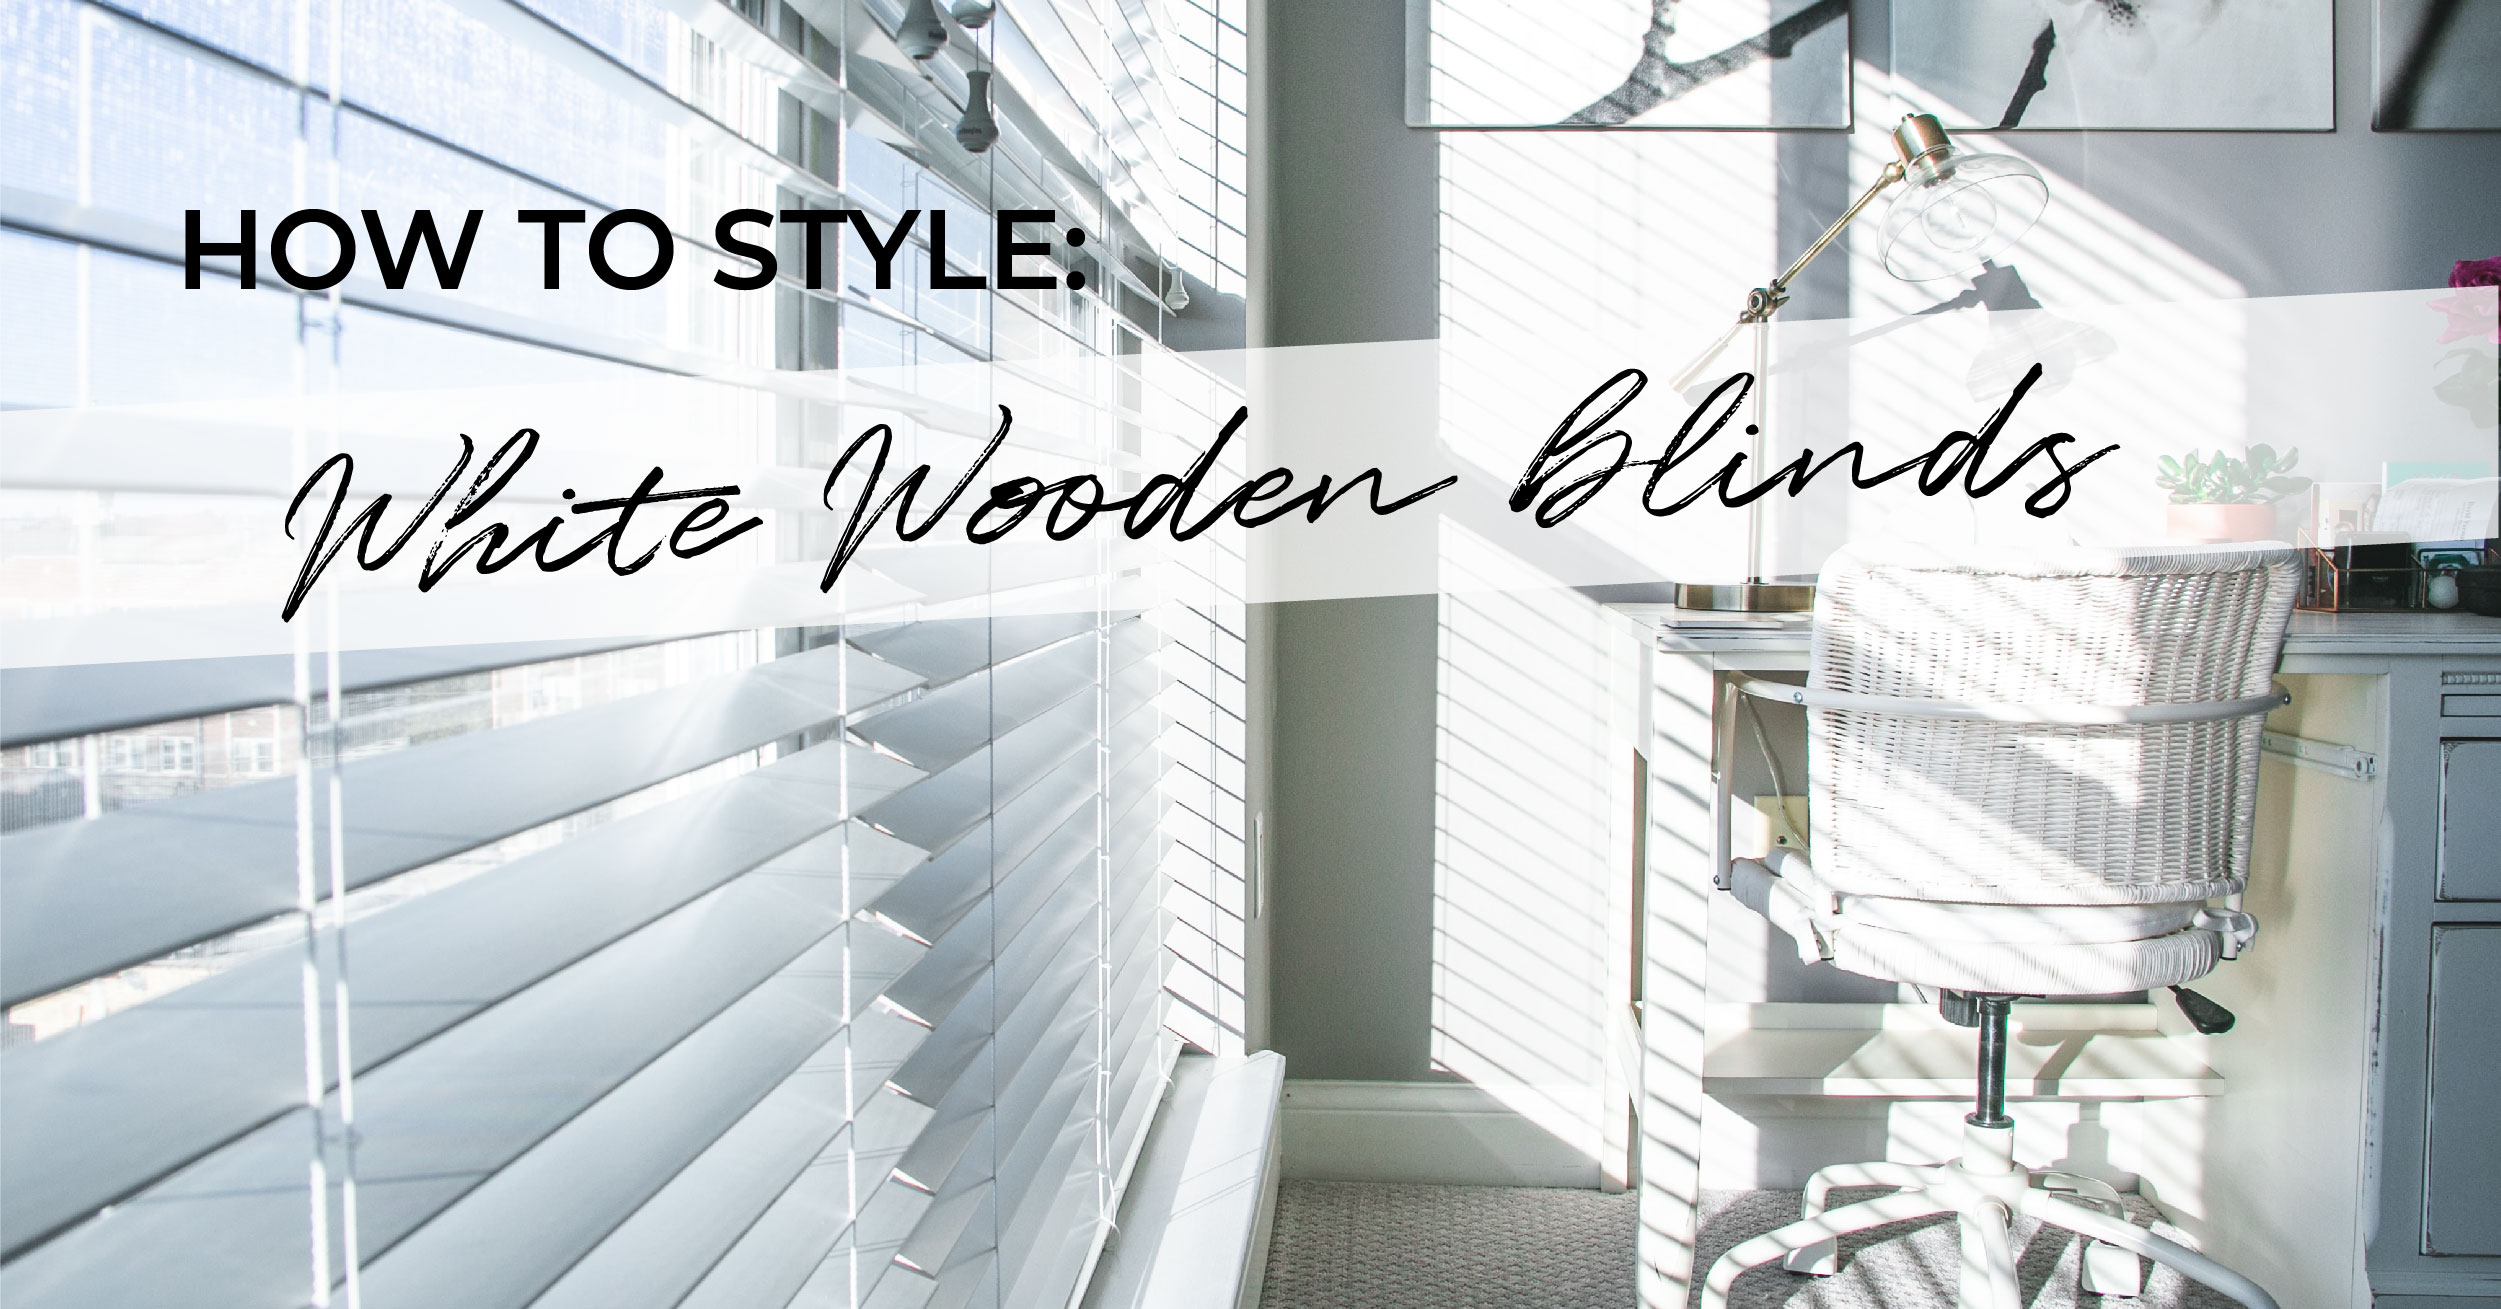 how-to-style-white-wooden-blinds